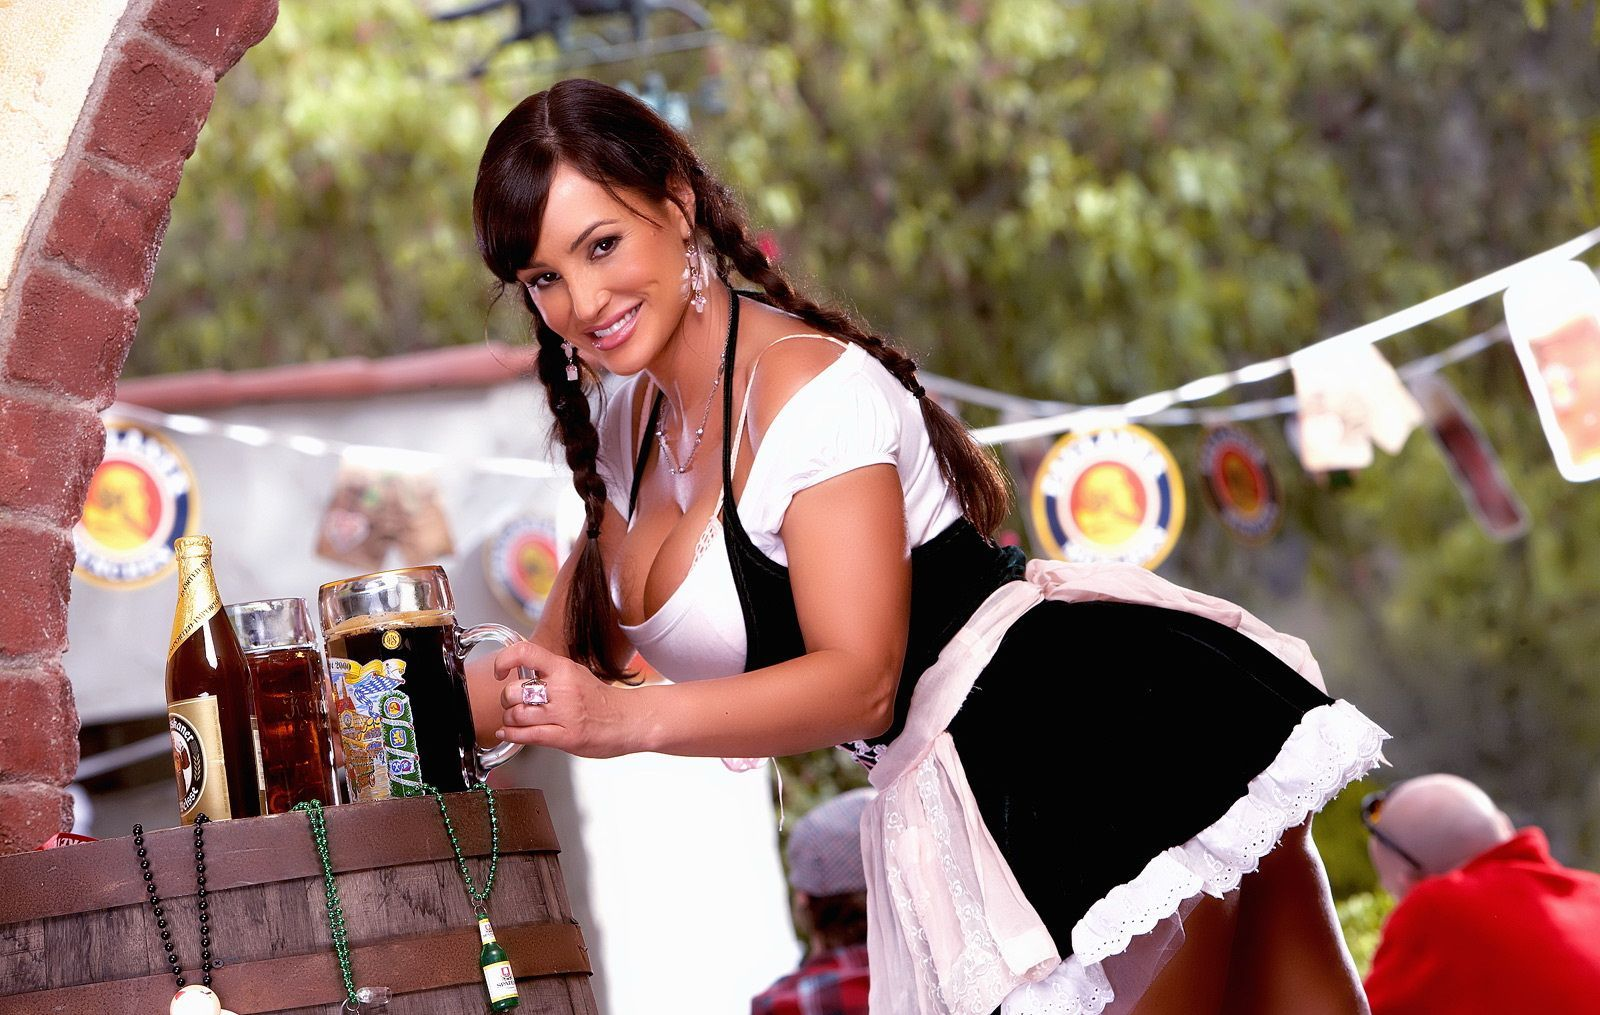 brunettes woman maids cleavage HD Wallpaper